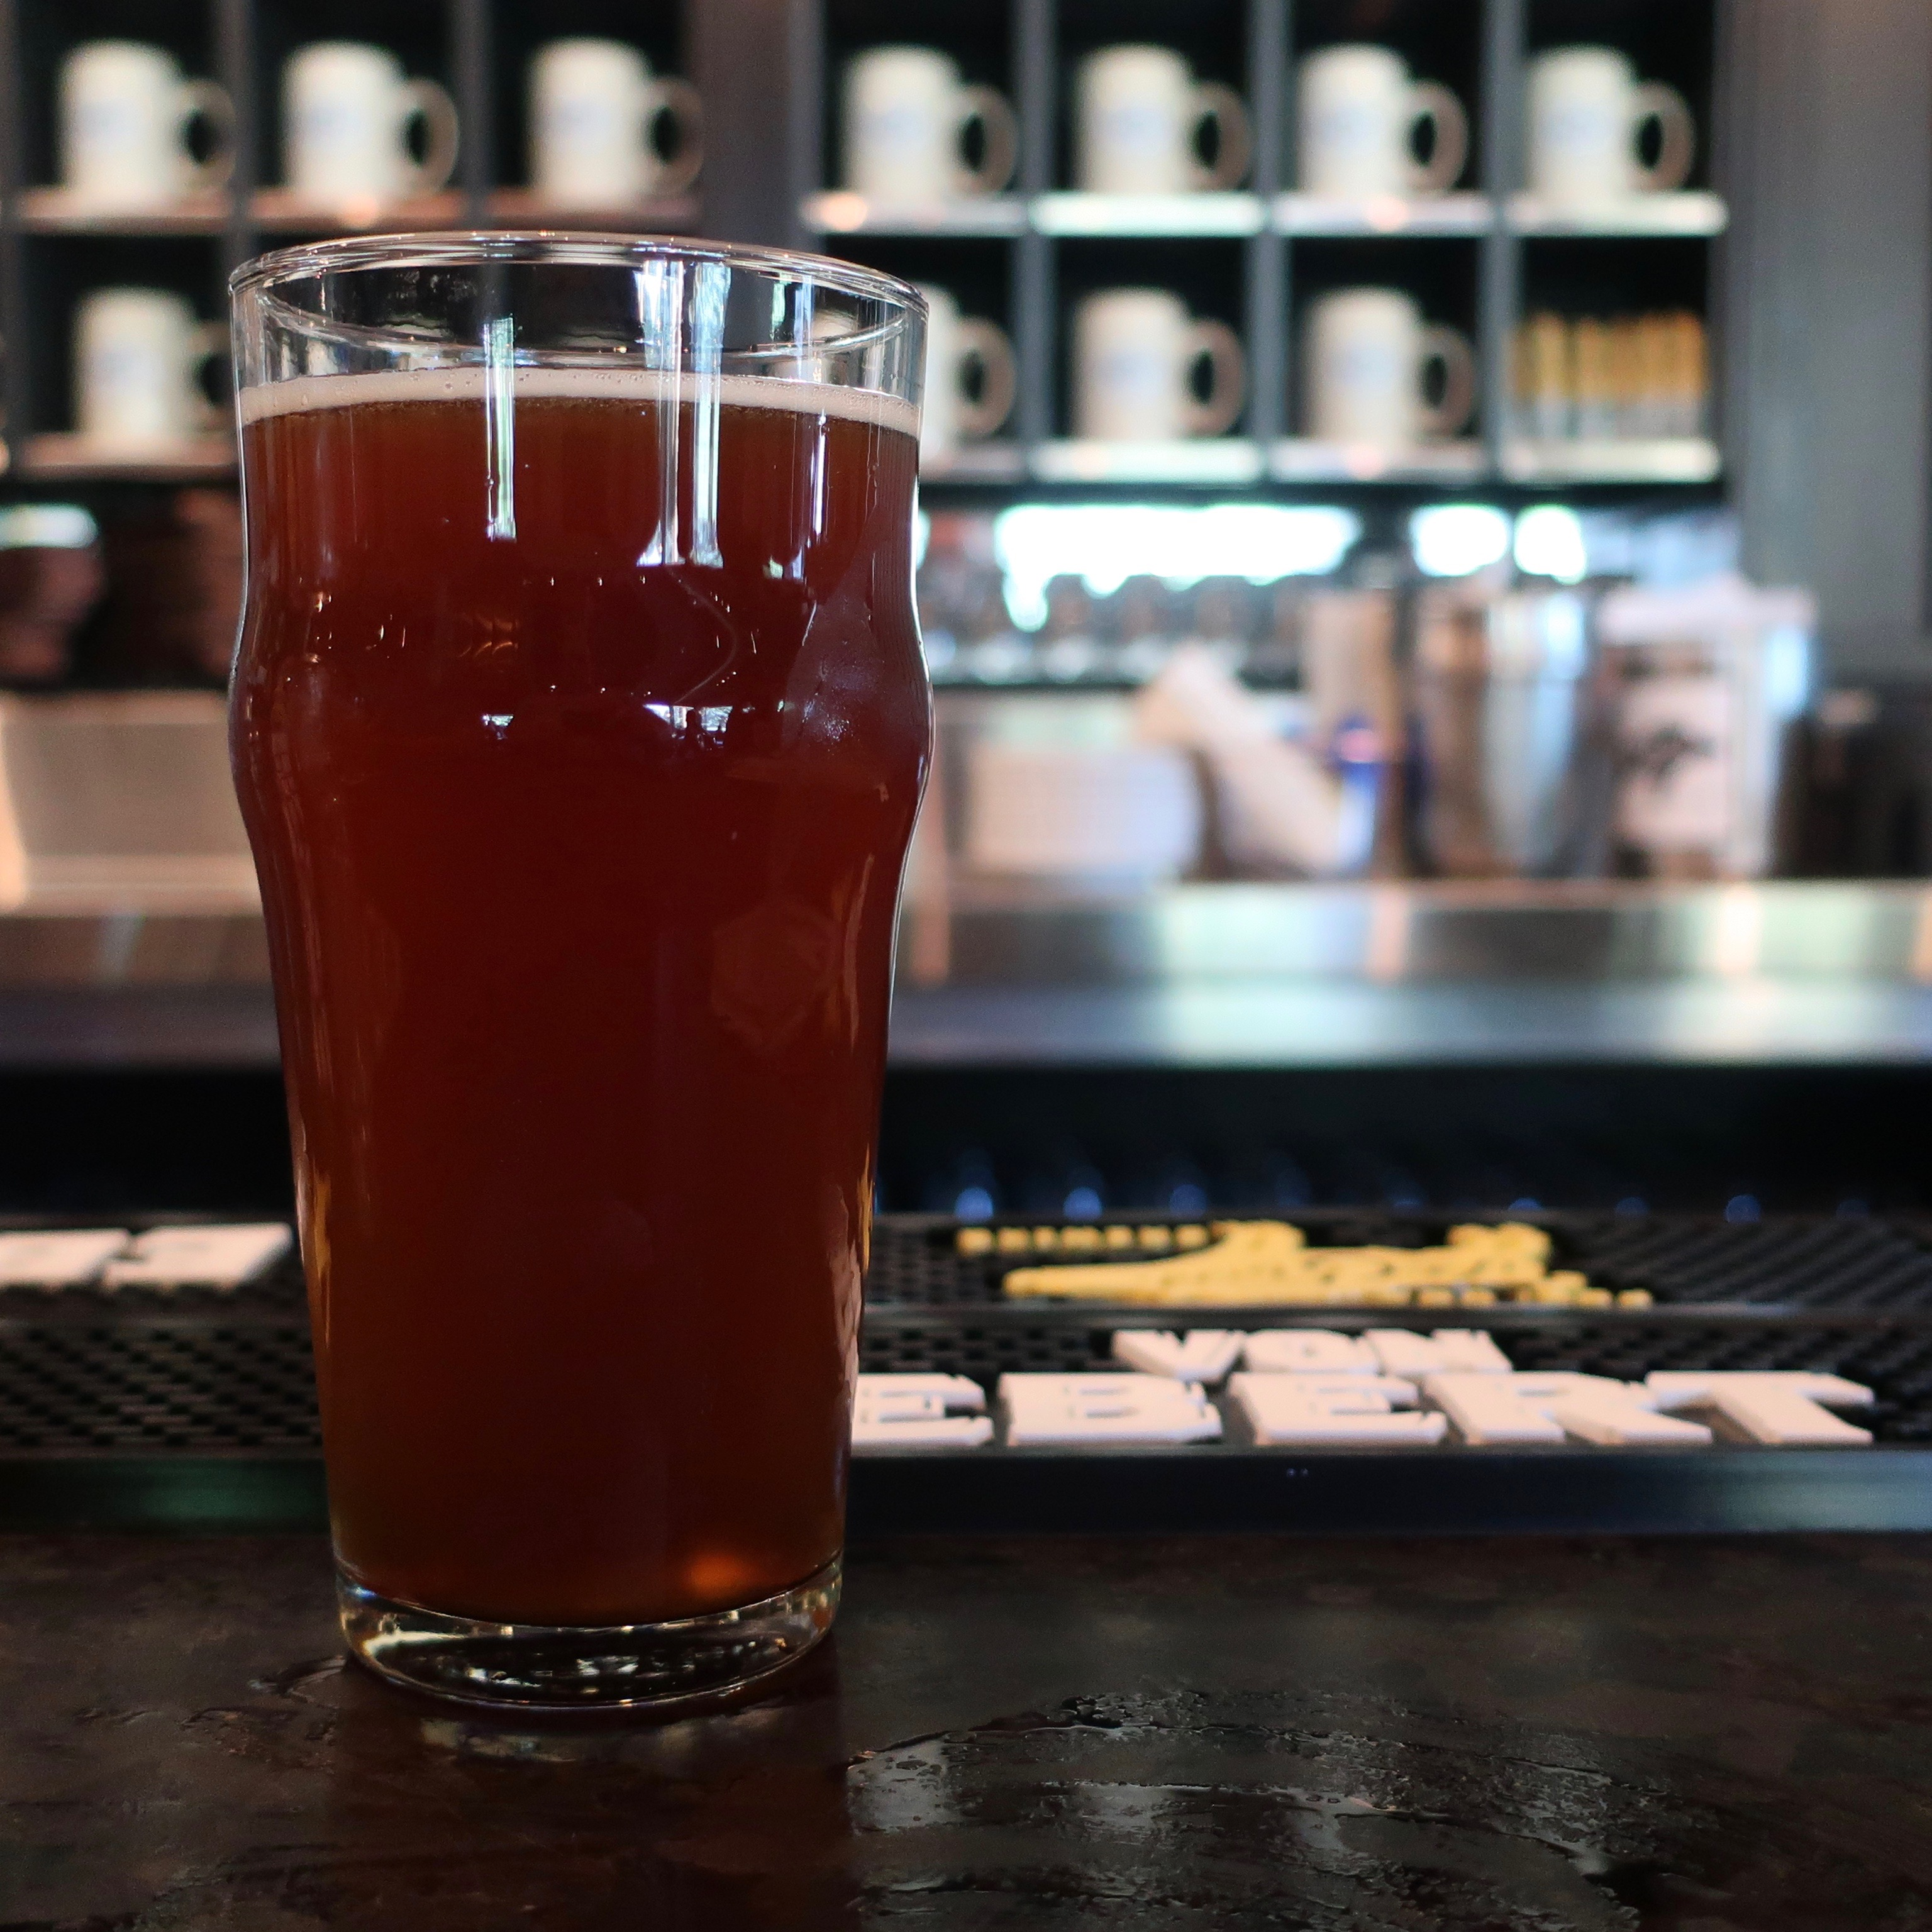 A beer at Von Ebert Brewing – East.